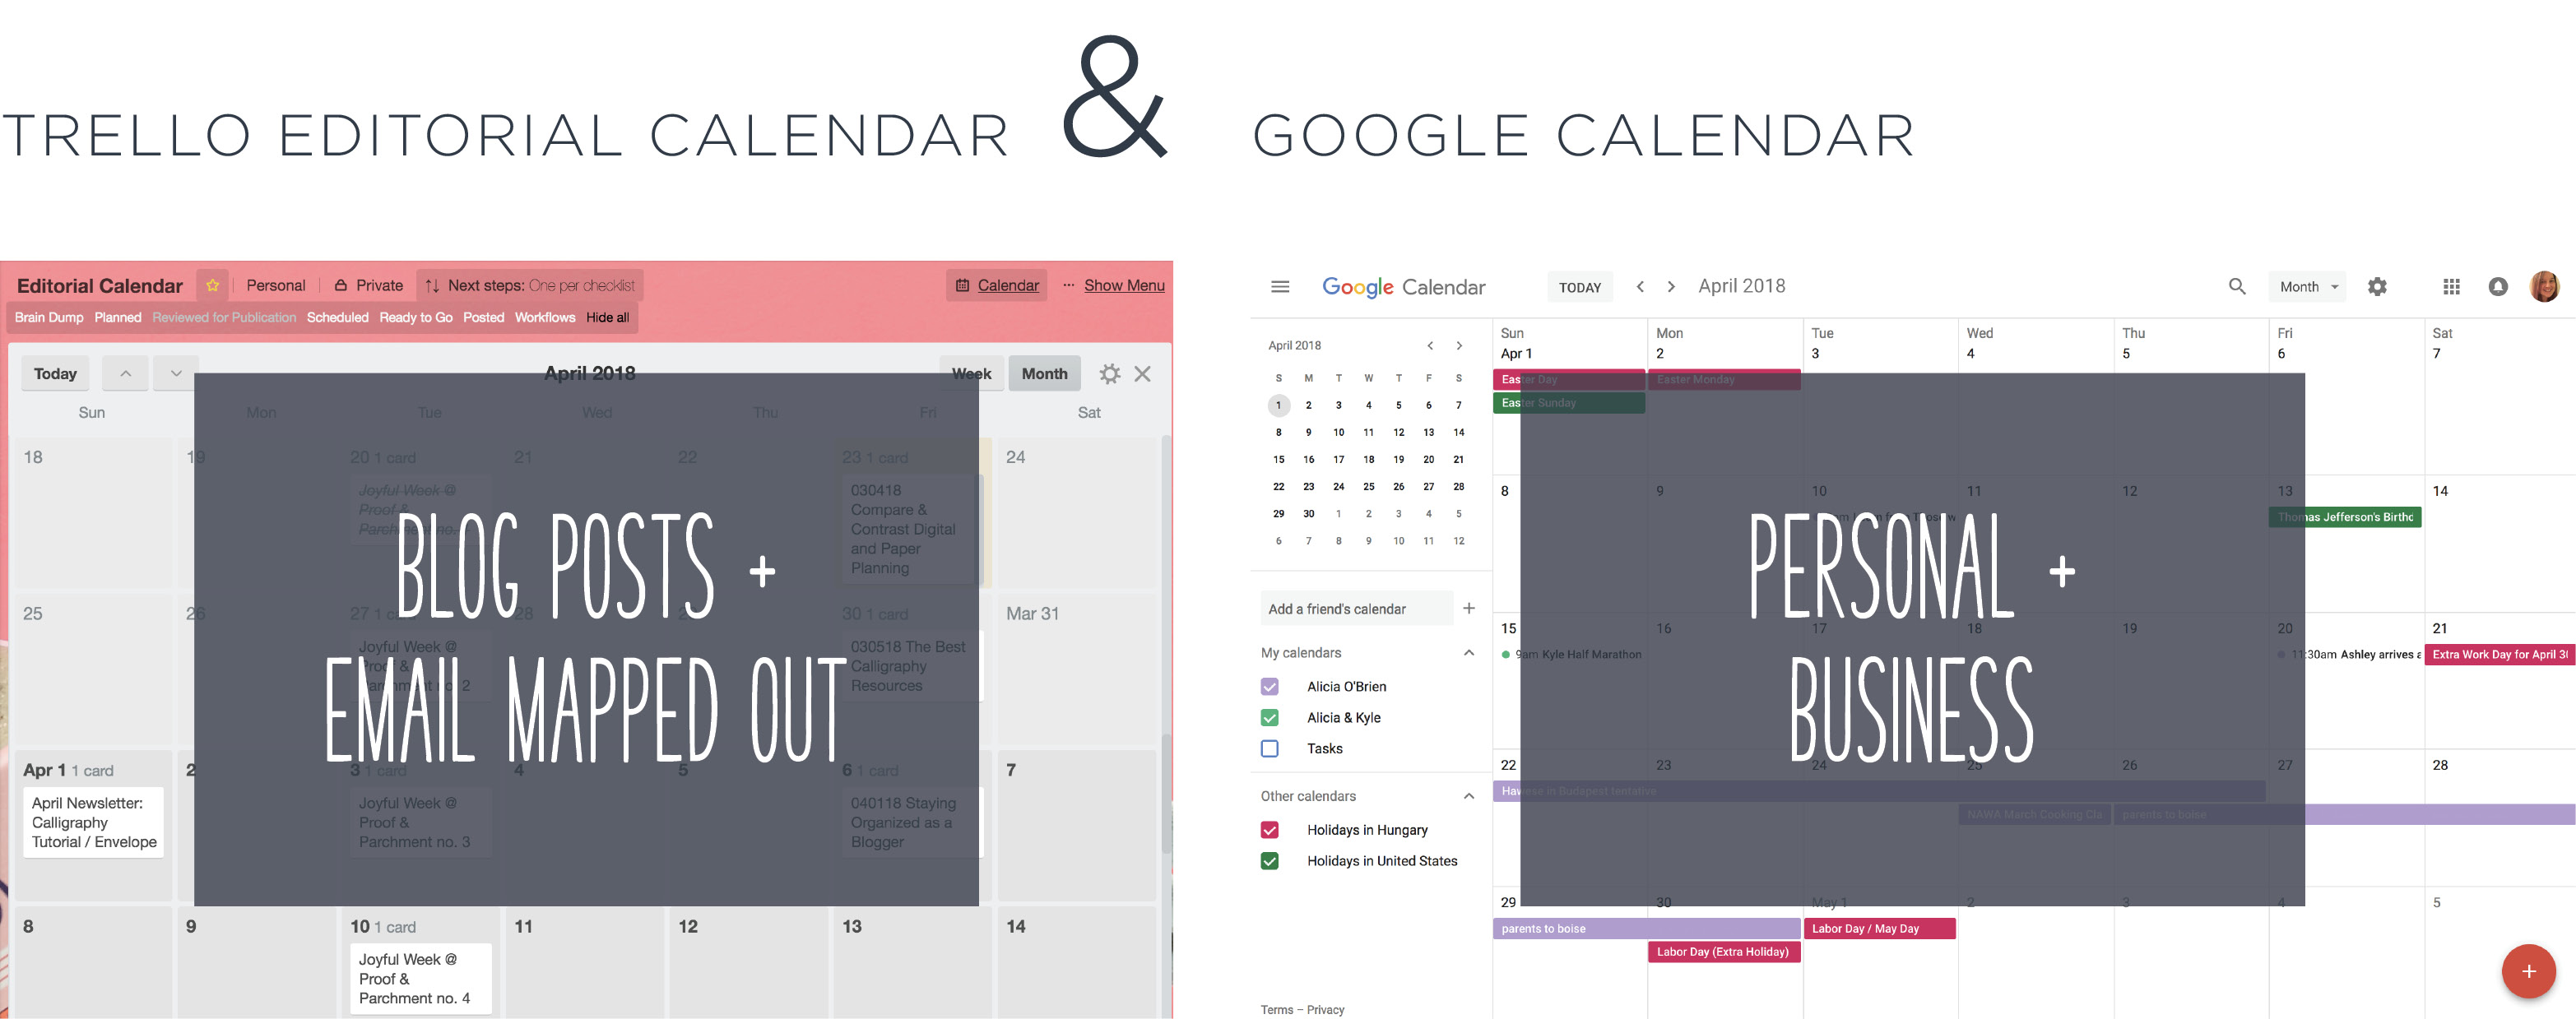 Digital planning tools including Google Calendar and Trello Editorial Calendar